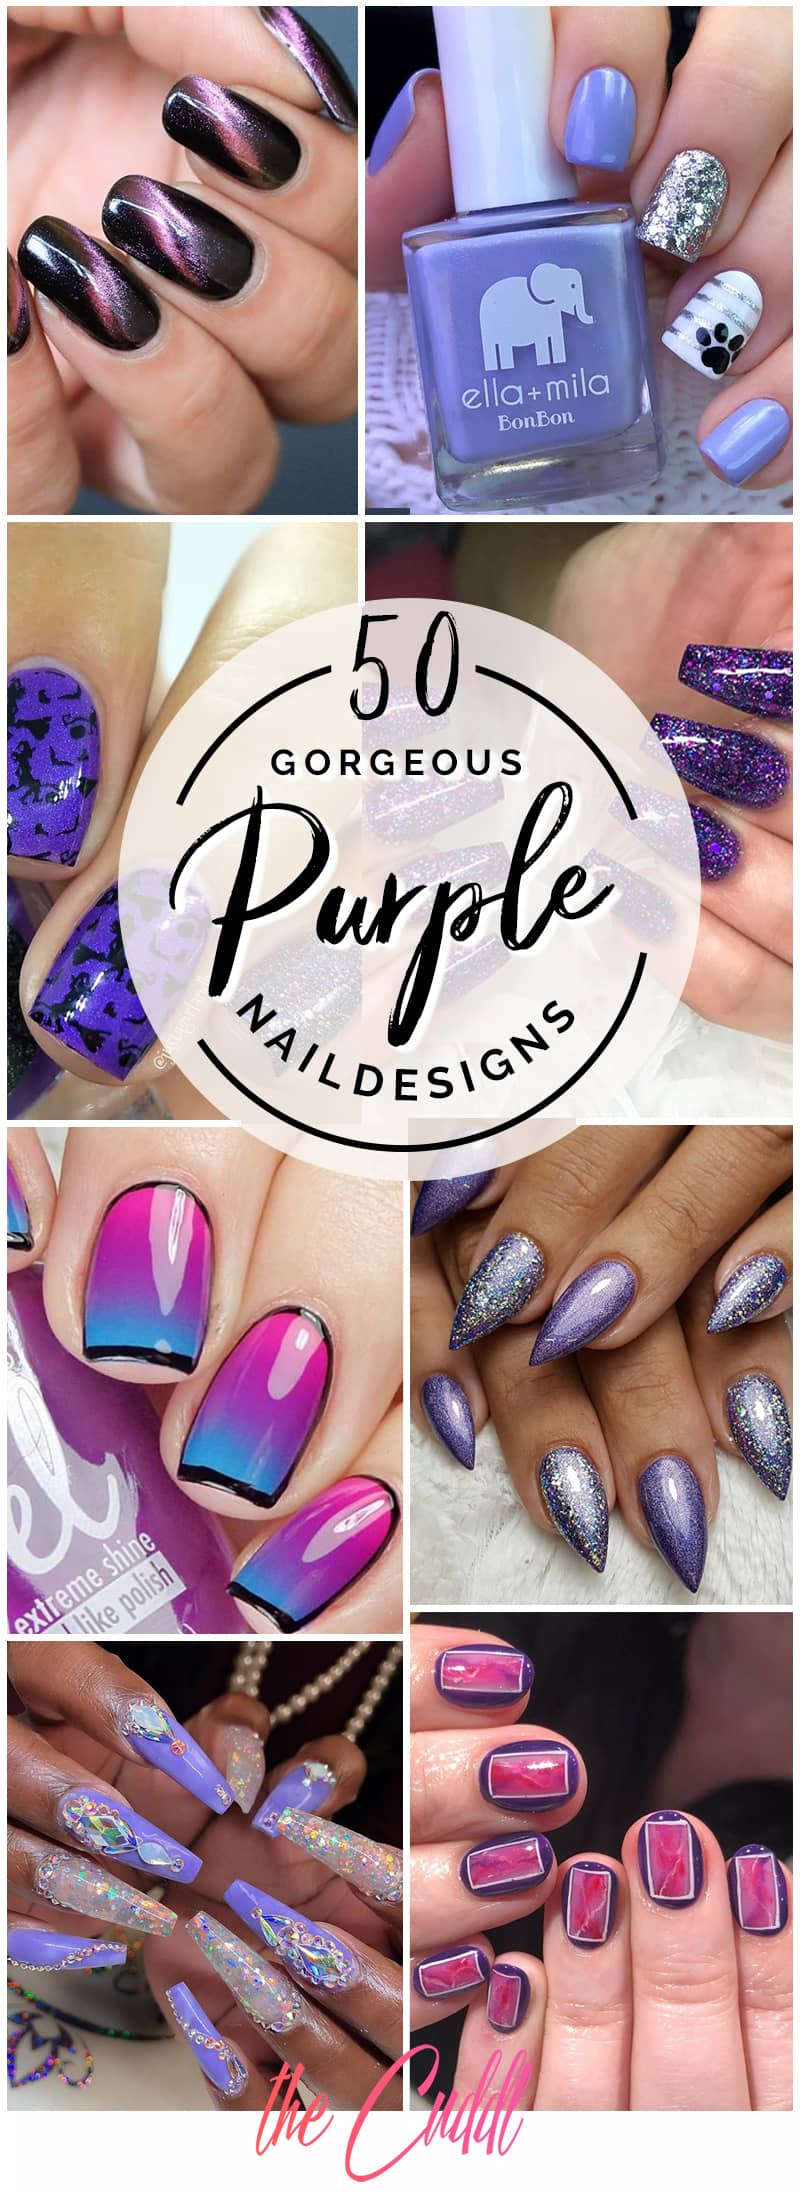 50 Gorgeous Purple Nails to Inspire your Next Nail Design